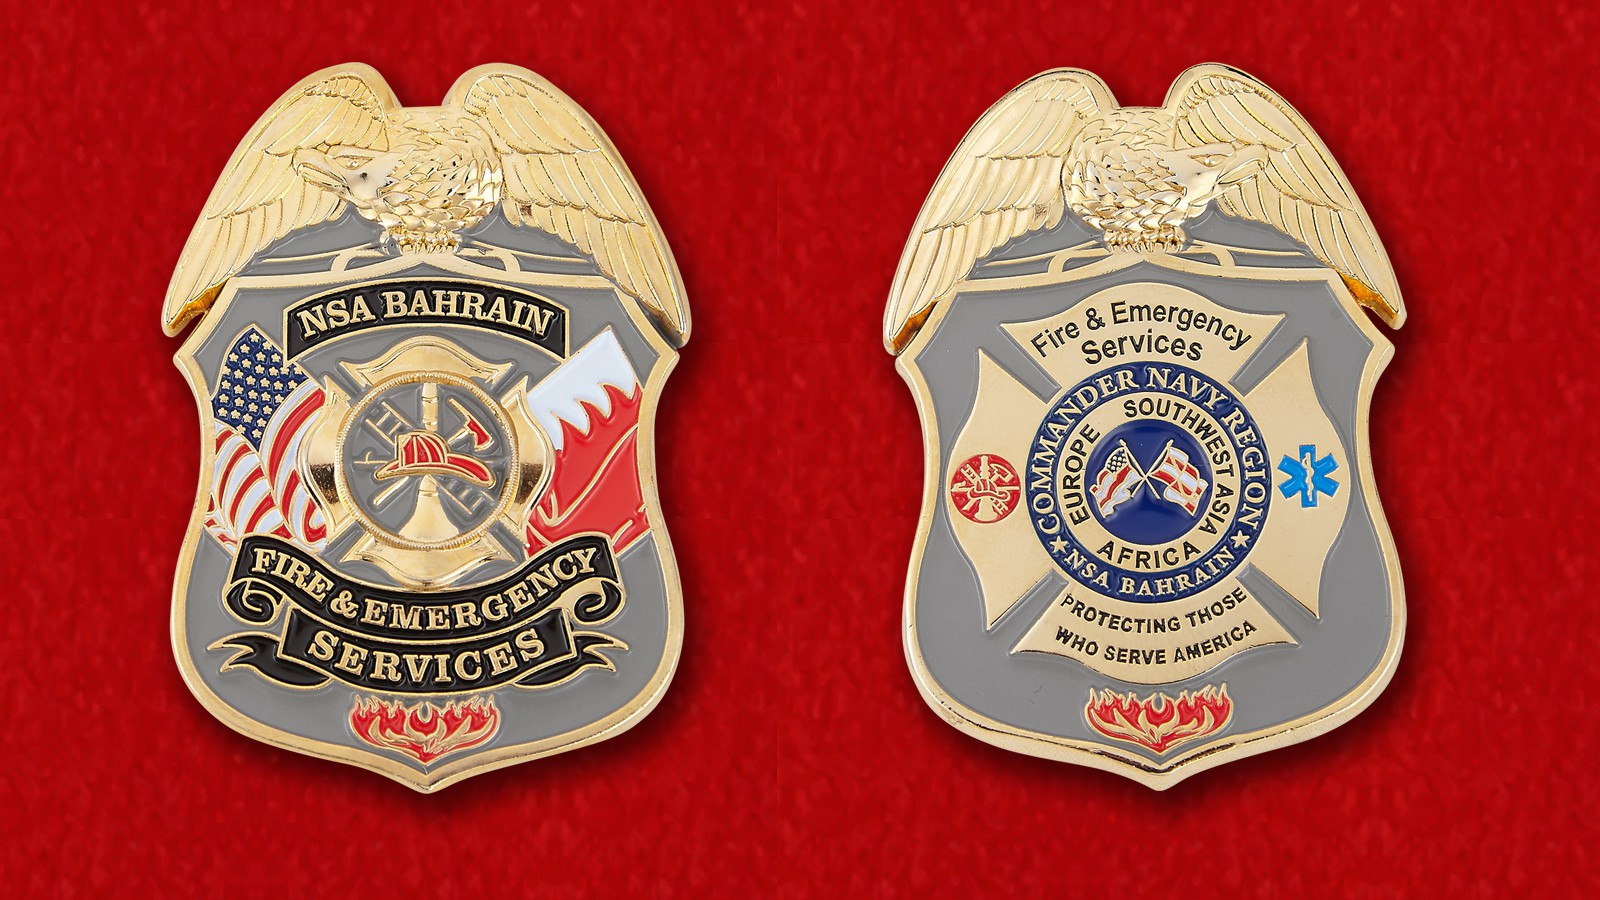 US Navy NSA Bahrain Fire & Emergency Services Challenge Coin